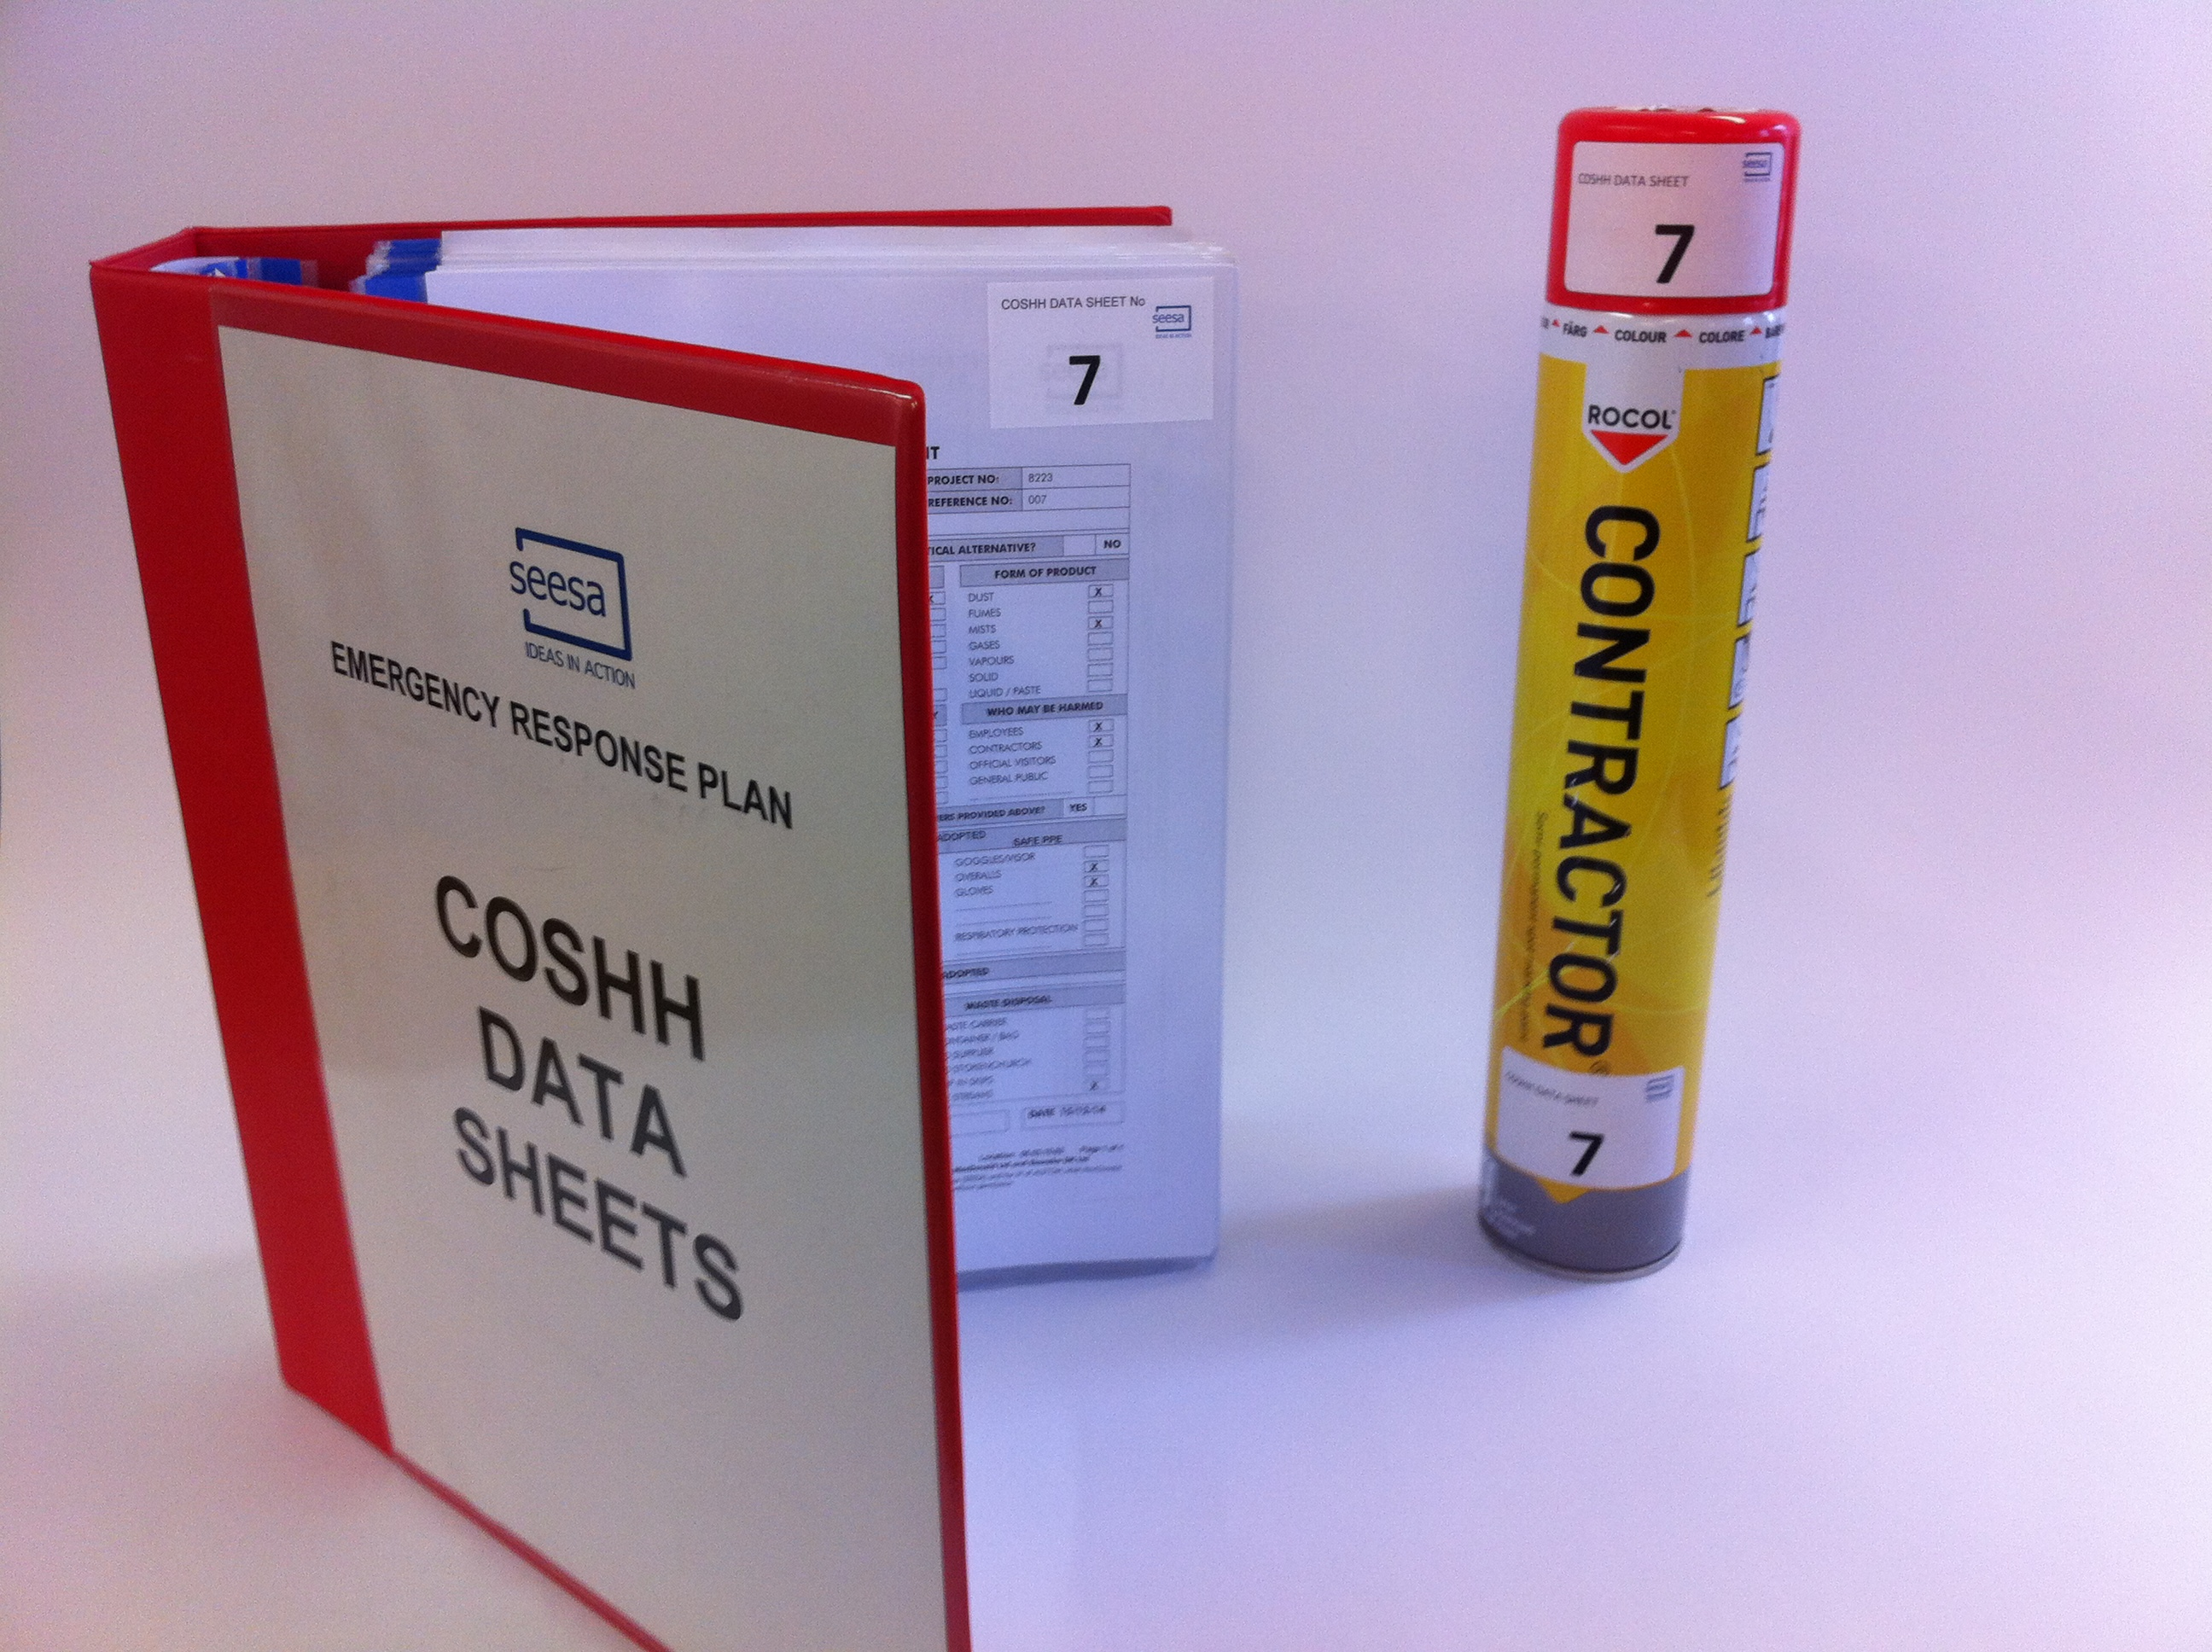 Keeping Records Of Coshh Materials Best Practice Hub